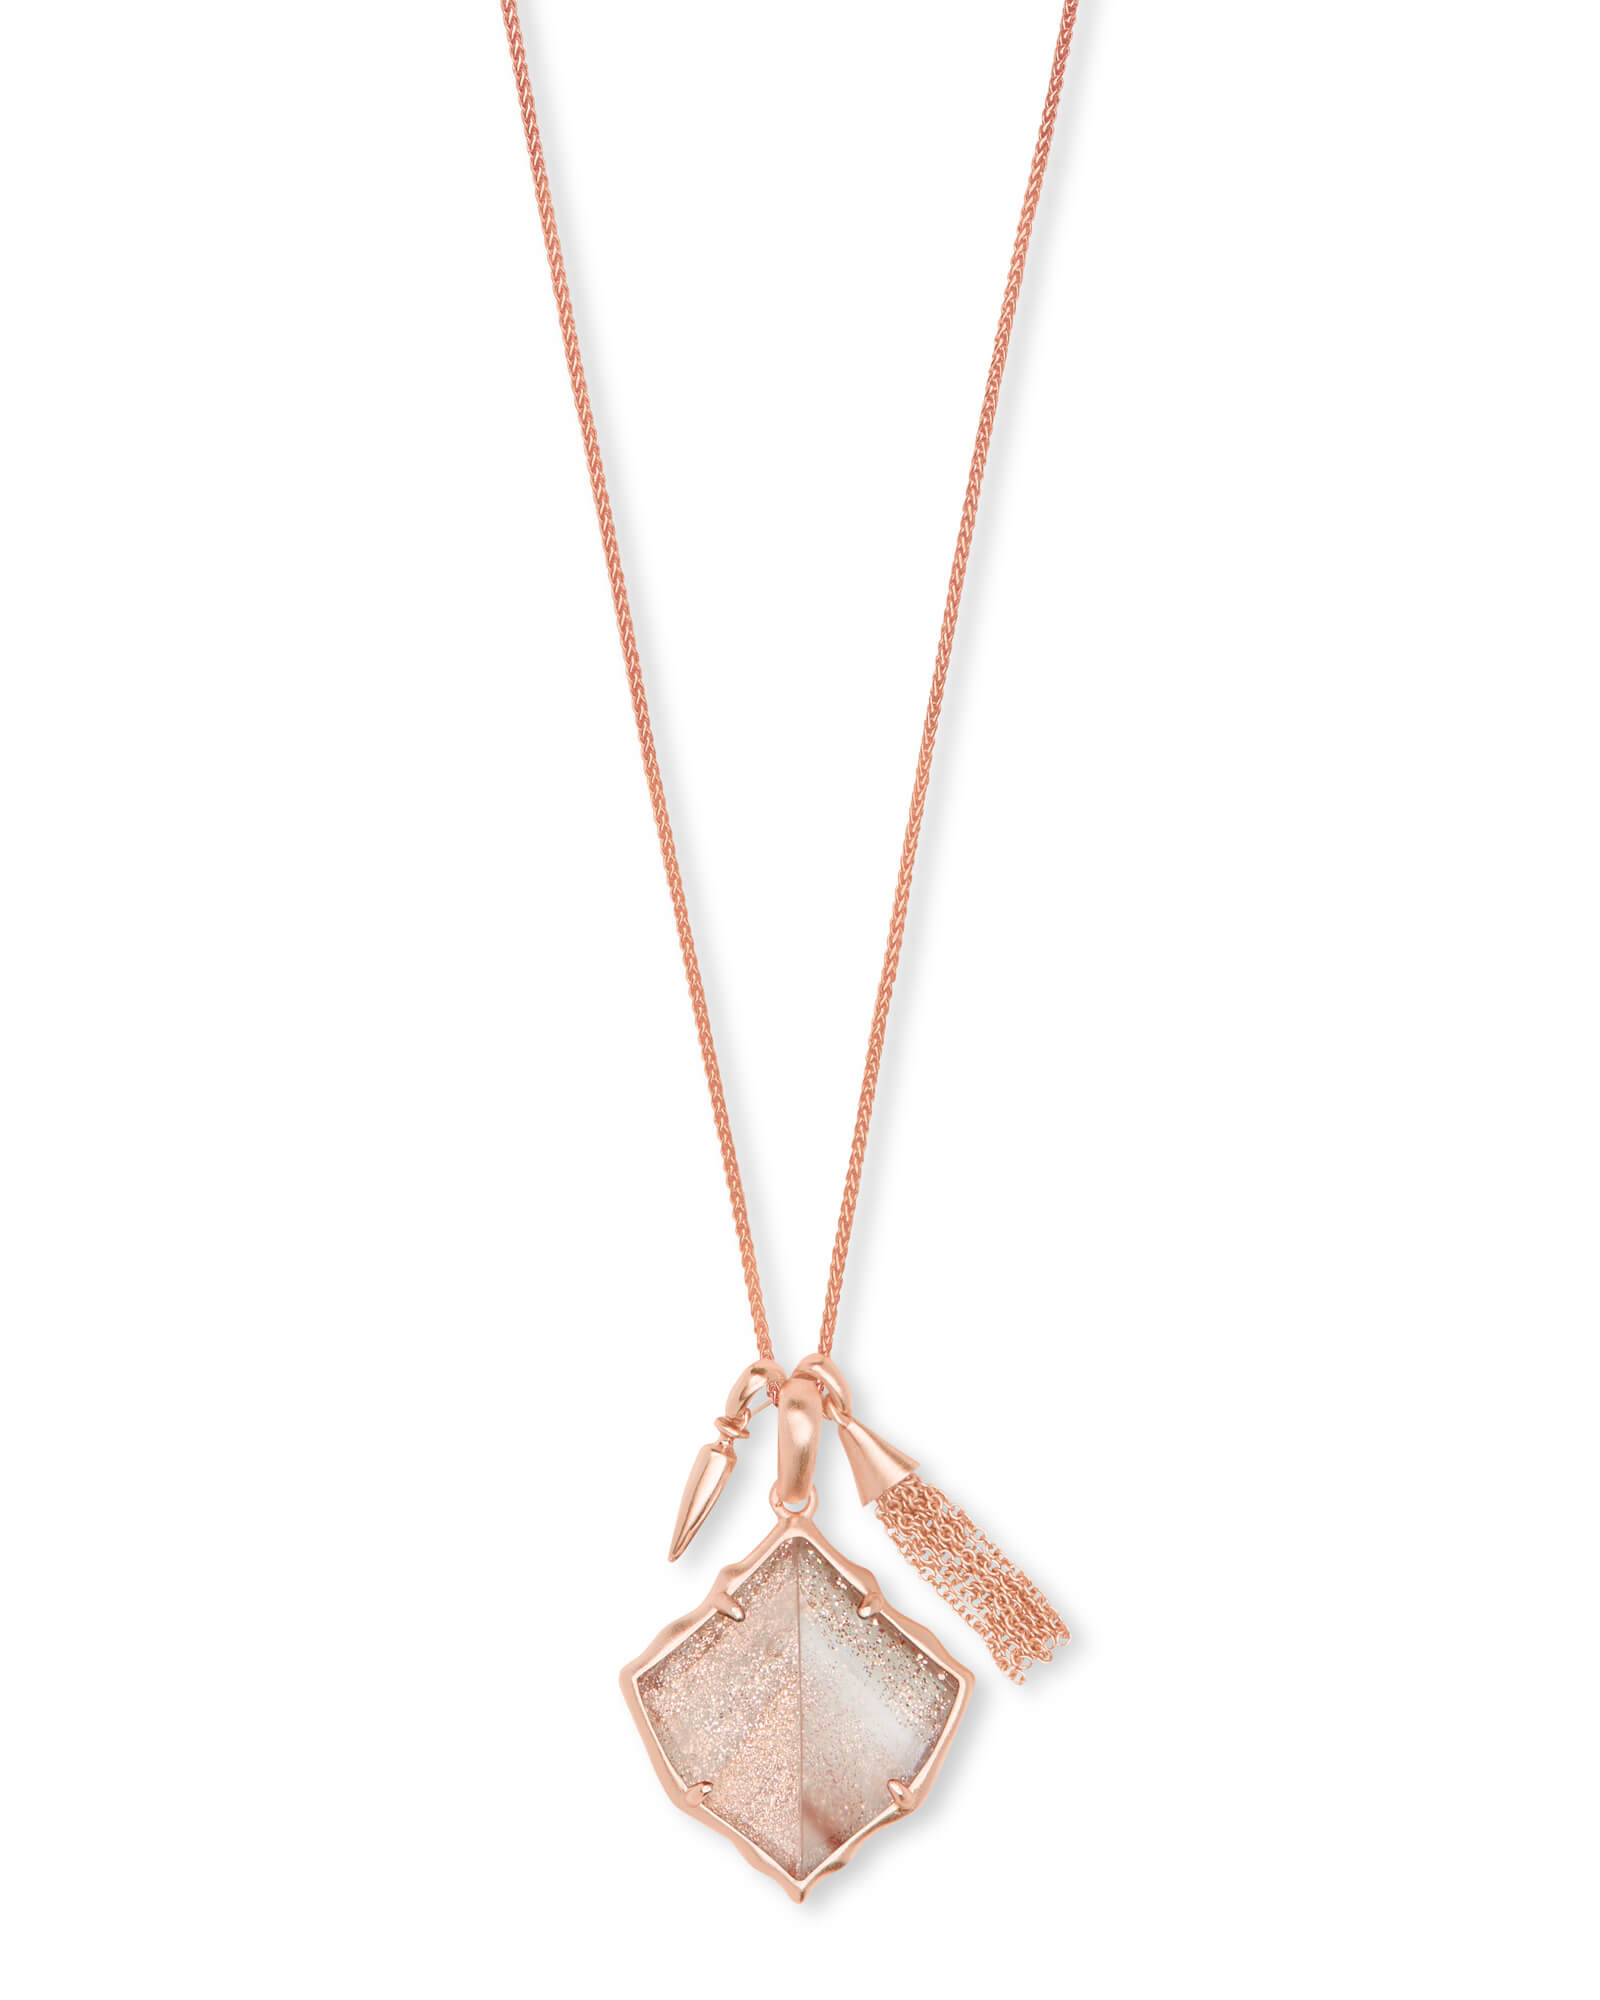 Arlet Rose Gold Pendant Necklace in Gold Dusted Glass